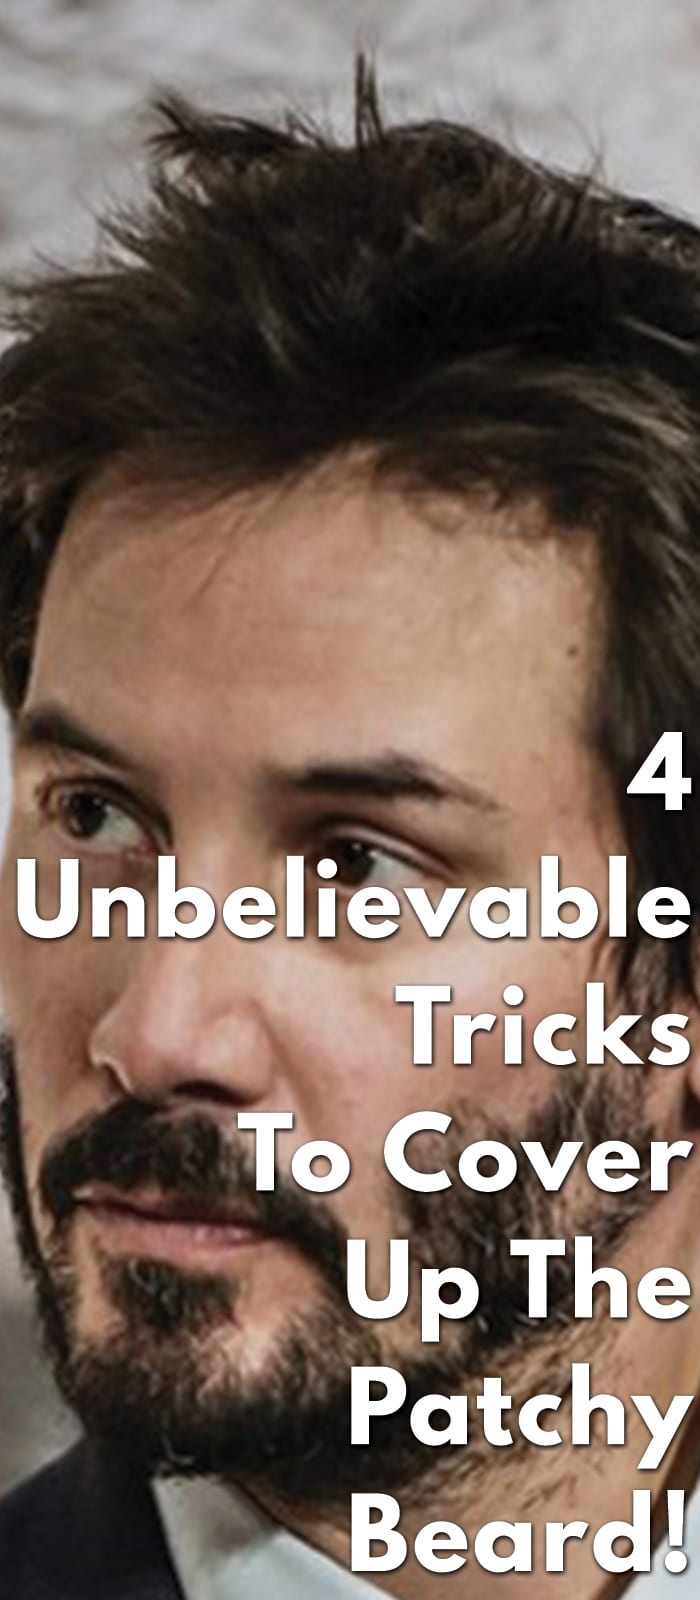 4-Unbelievable-Tricks-To-Cover-Up-The-Patchy-Beard!